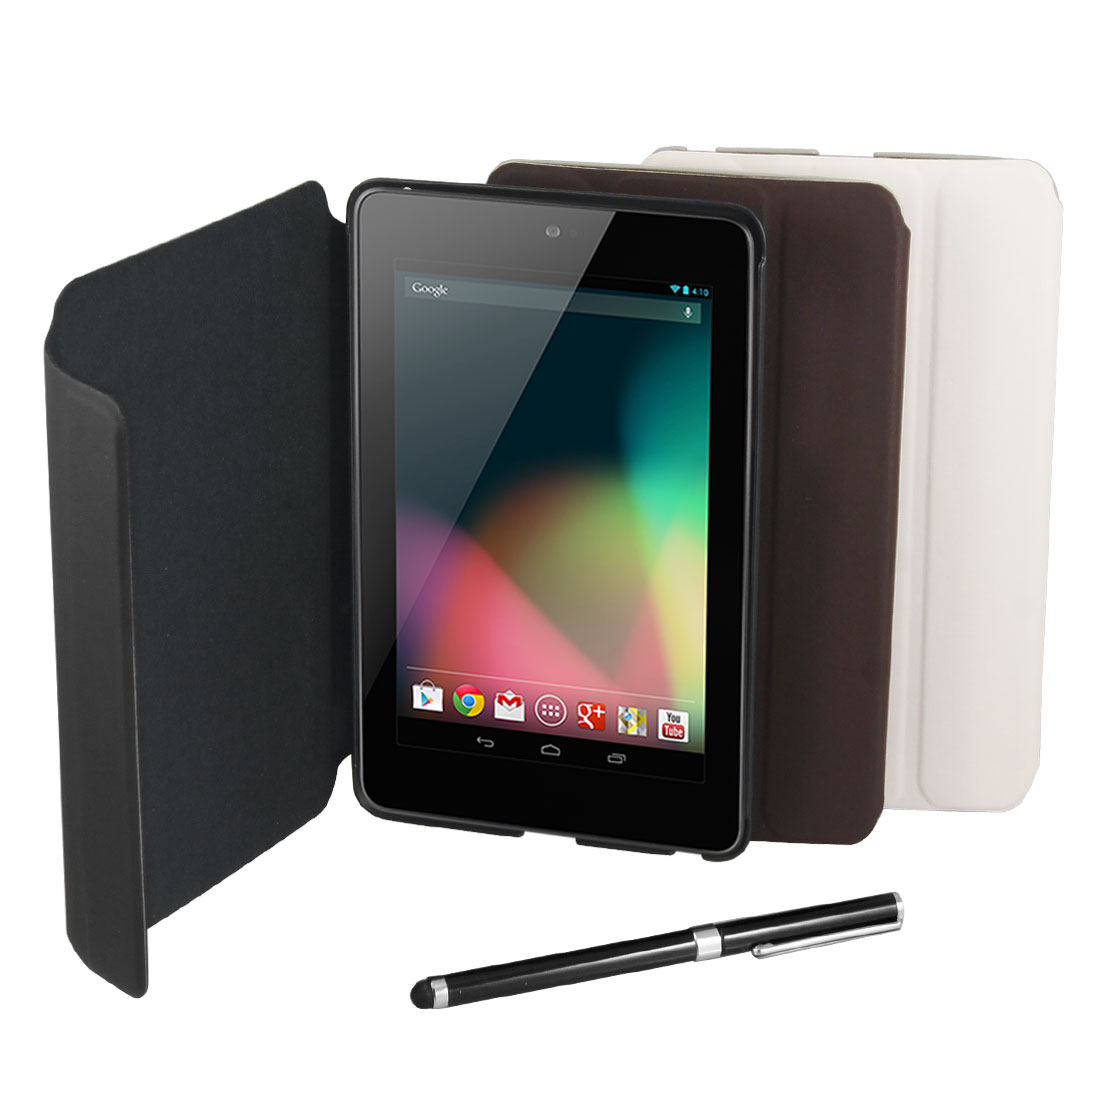 Black Faux Leather Sleeve Case Cover w Stylus for Google Nexus 7 Android Tablet